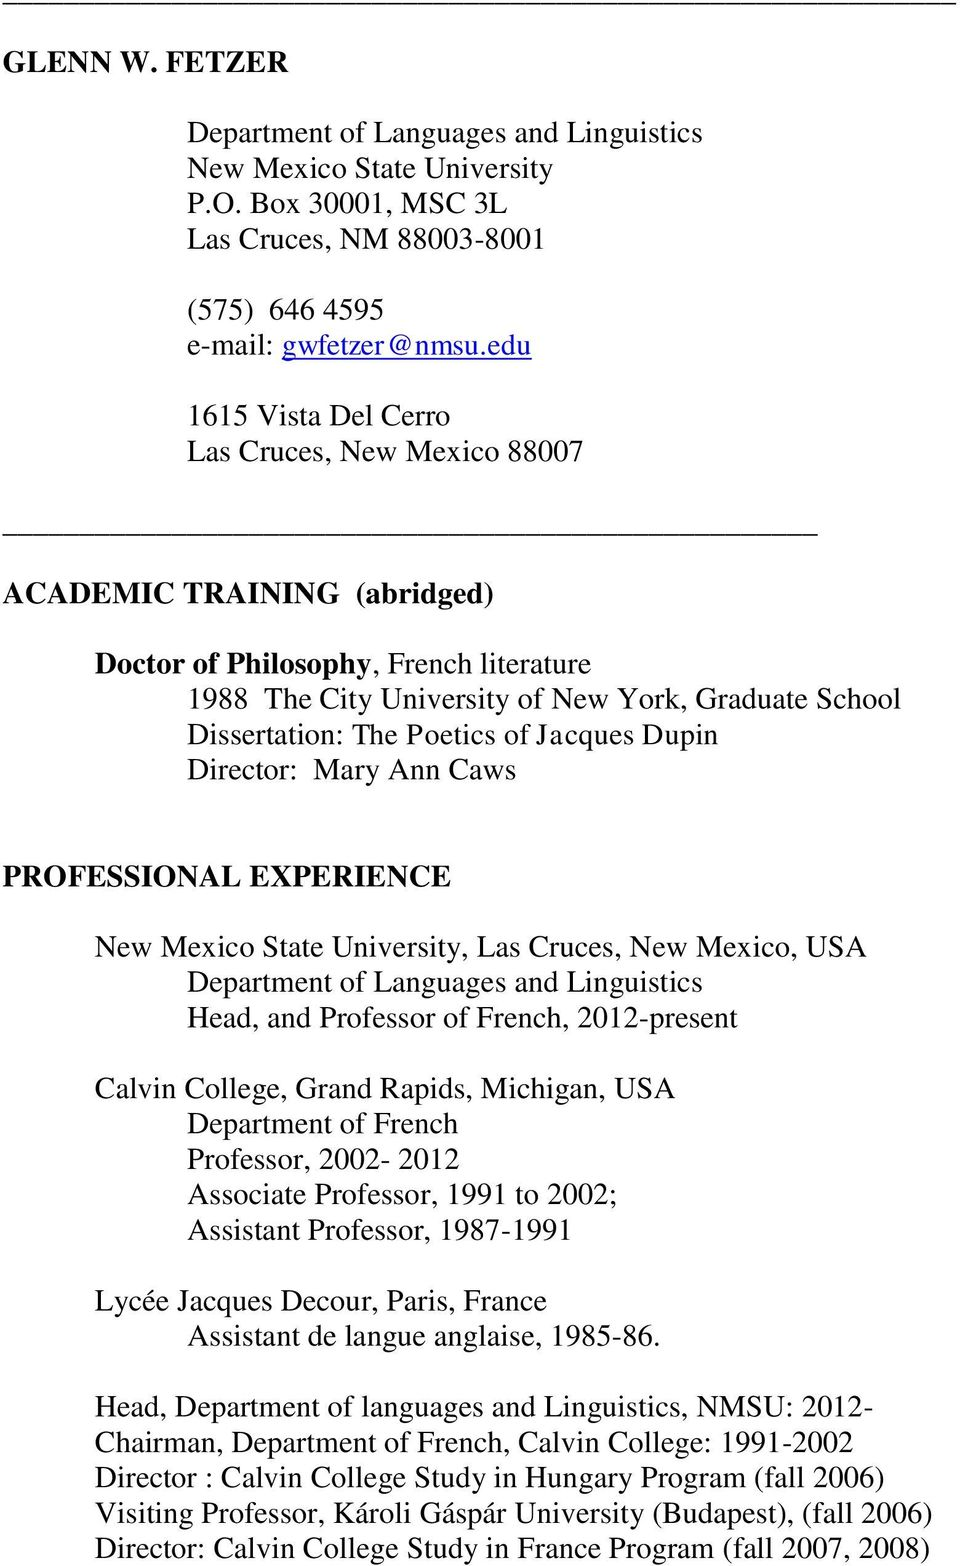 Poetics of Jacques Dupin Director: Mary Ann Caws PROFESSIONAL EXPERIENCE New Mexico State University, Las Cruces, New Mexico, USA Department of Languages and Linguistics Head, and Professor of